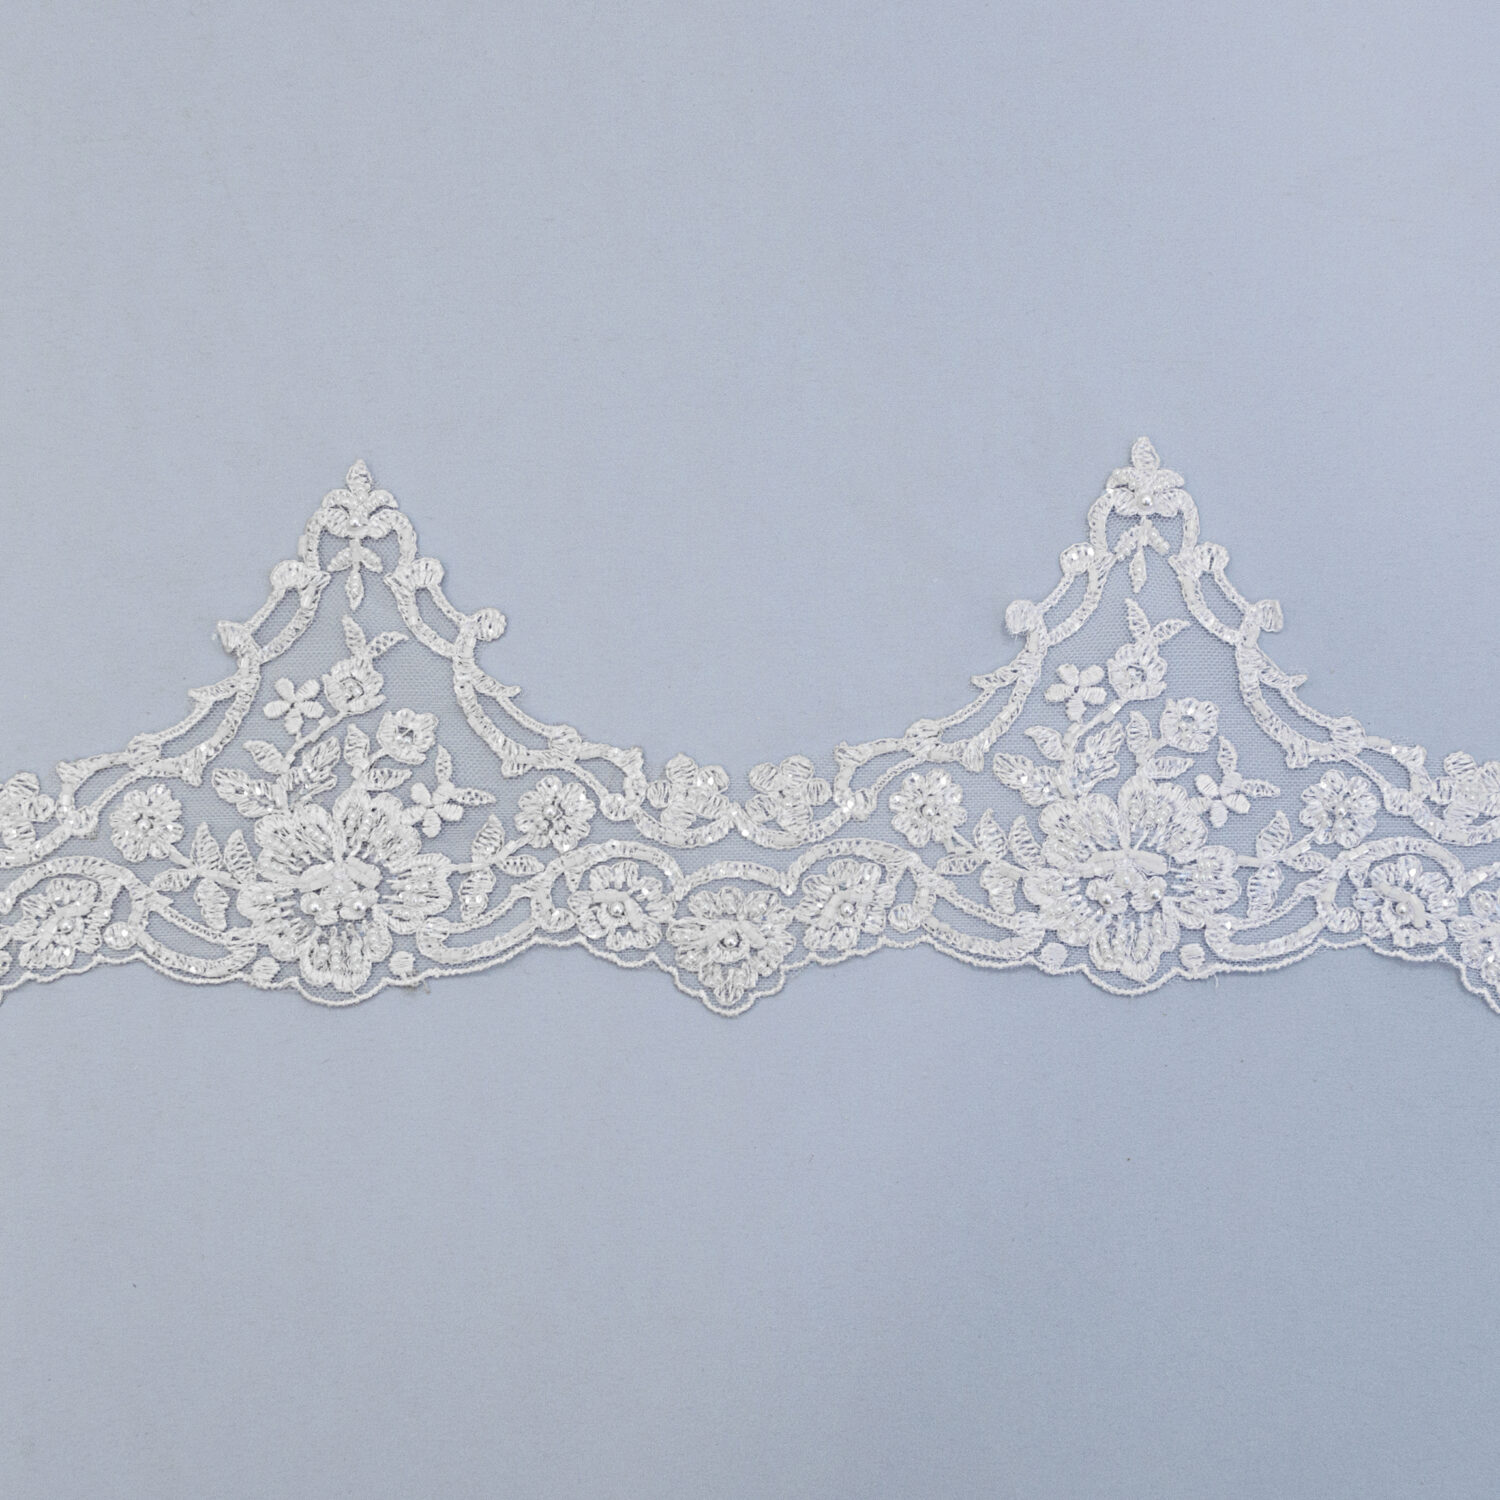 Embroidered lace trim M9775FB-1-N99